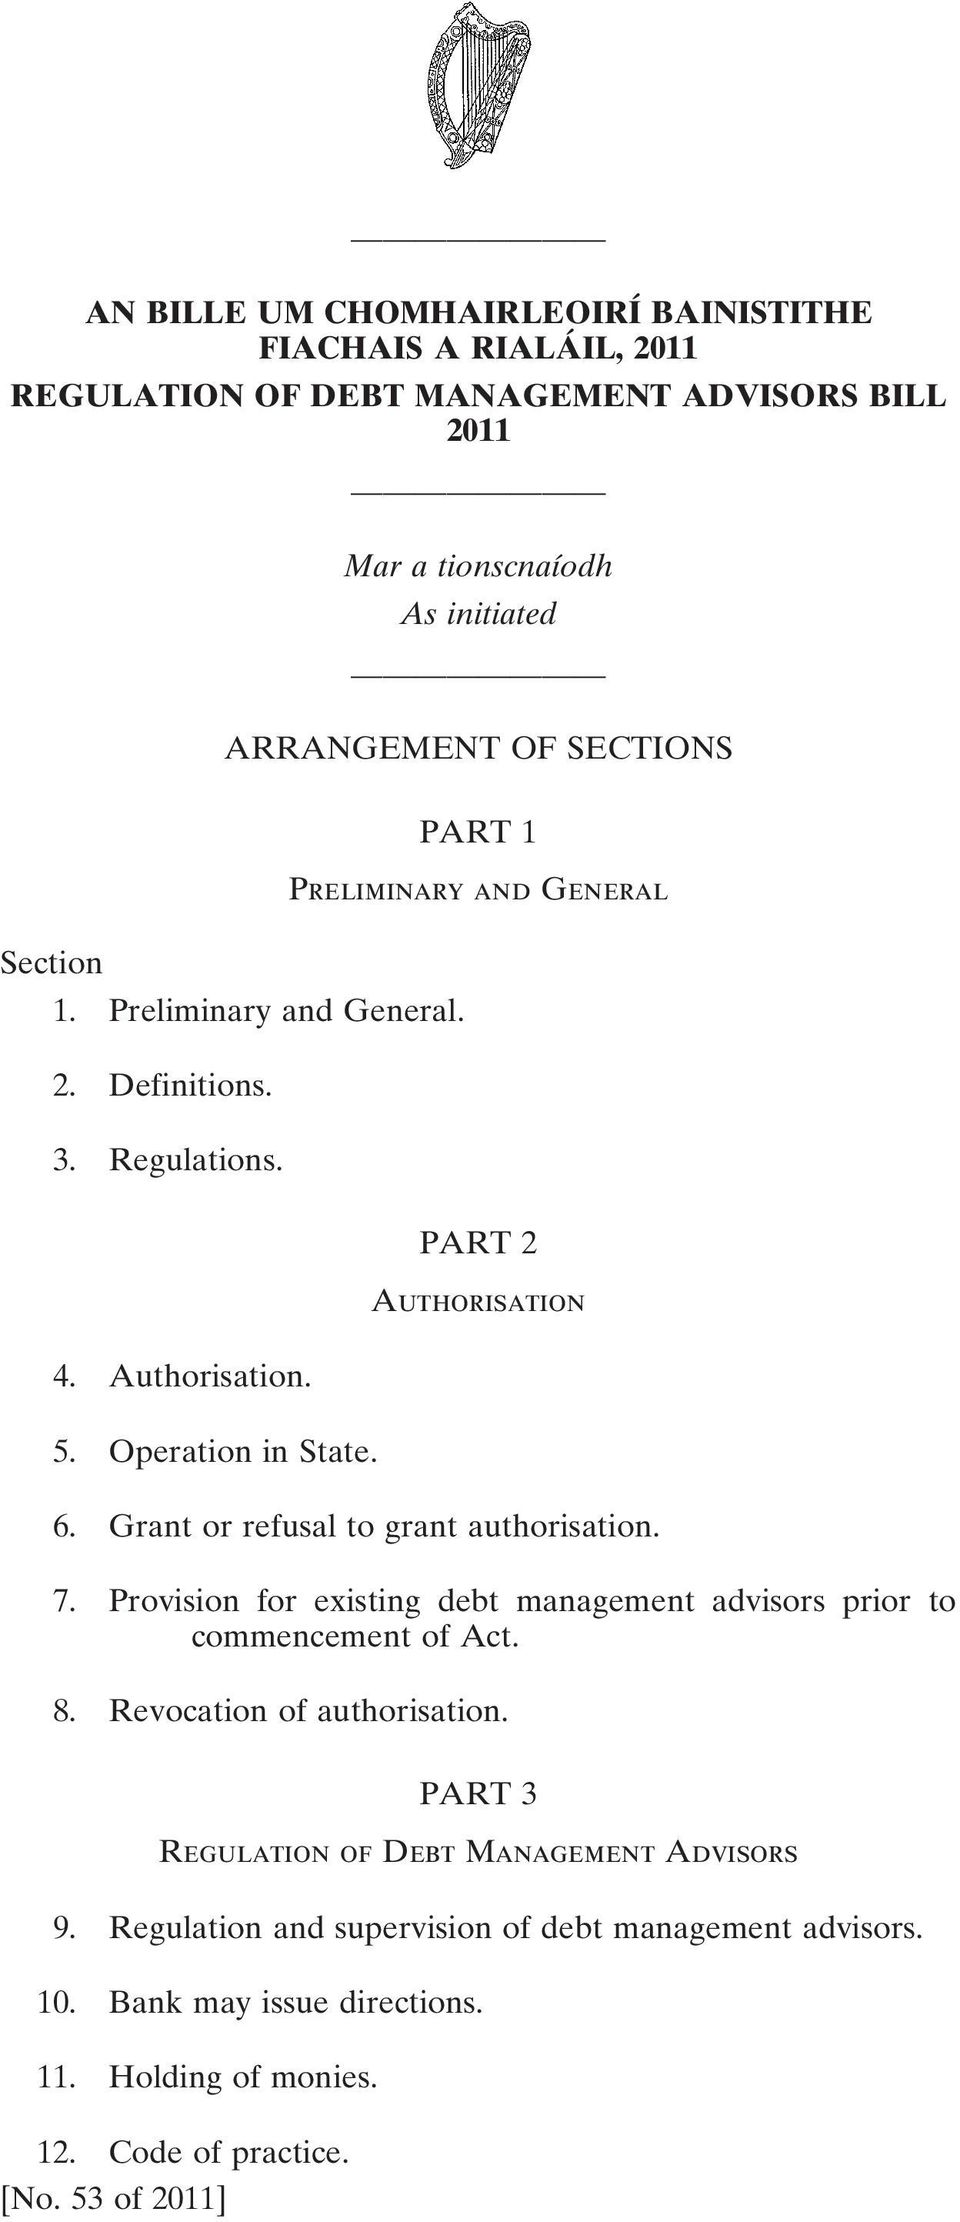 Grant or refusal to grant authorisation. 7. Provision for existing debt management advisors prior to commencement of Act. 8. Revocation of authorisation.